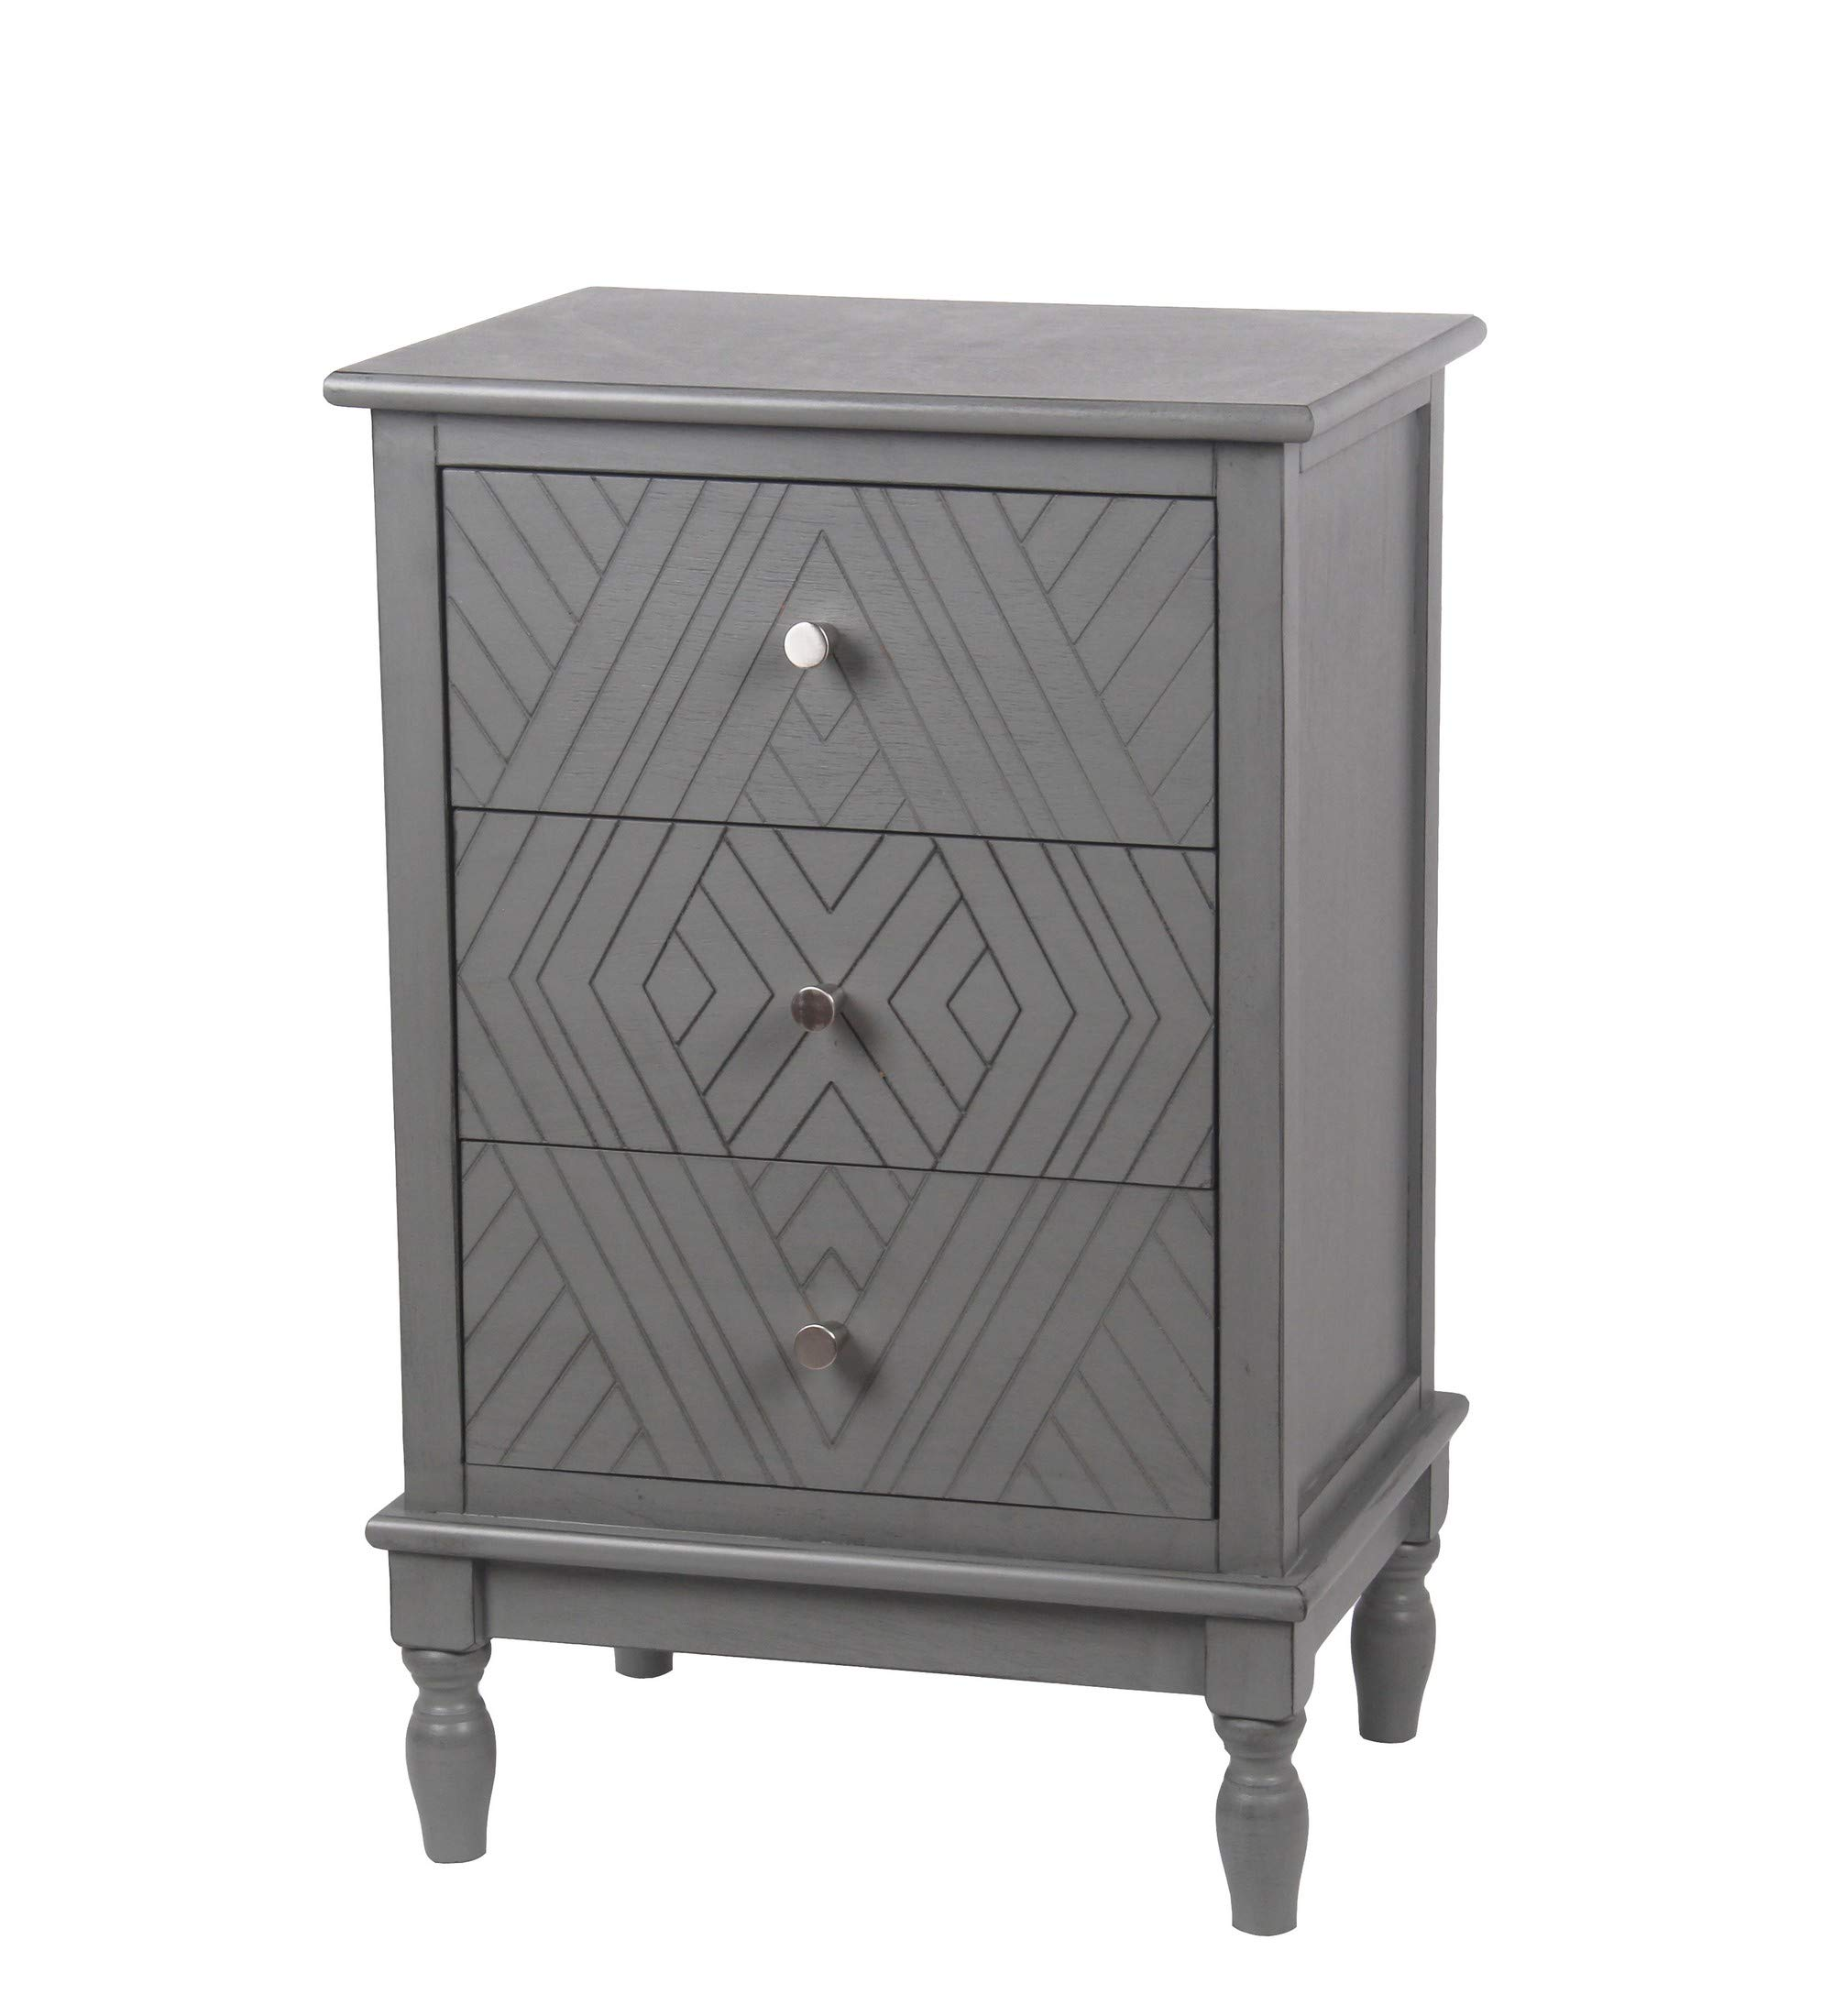 Privilege Vendee Gray 3 Drawer Accent Chest 28649 by Privilege